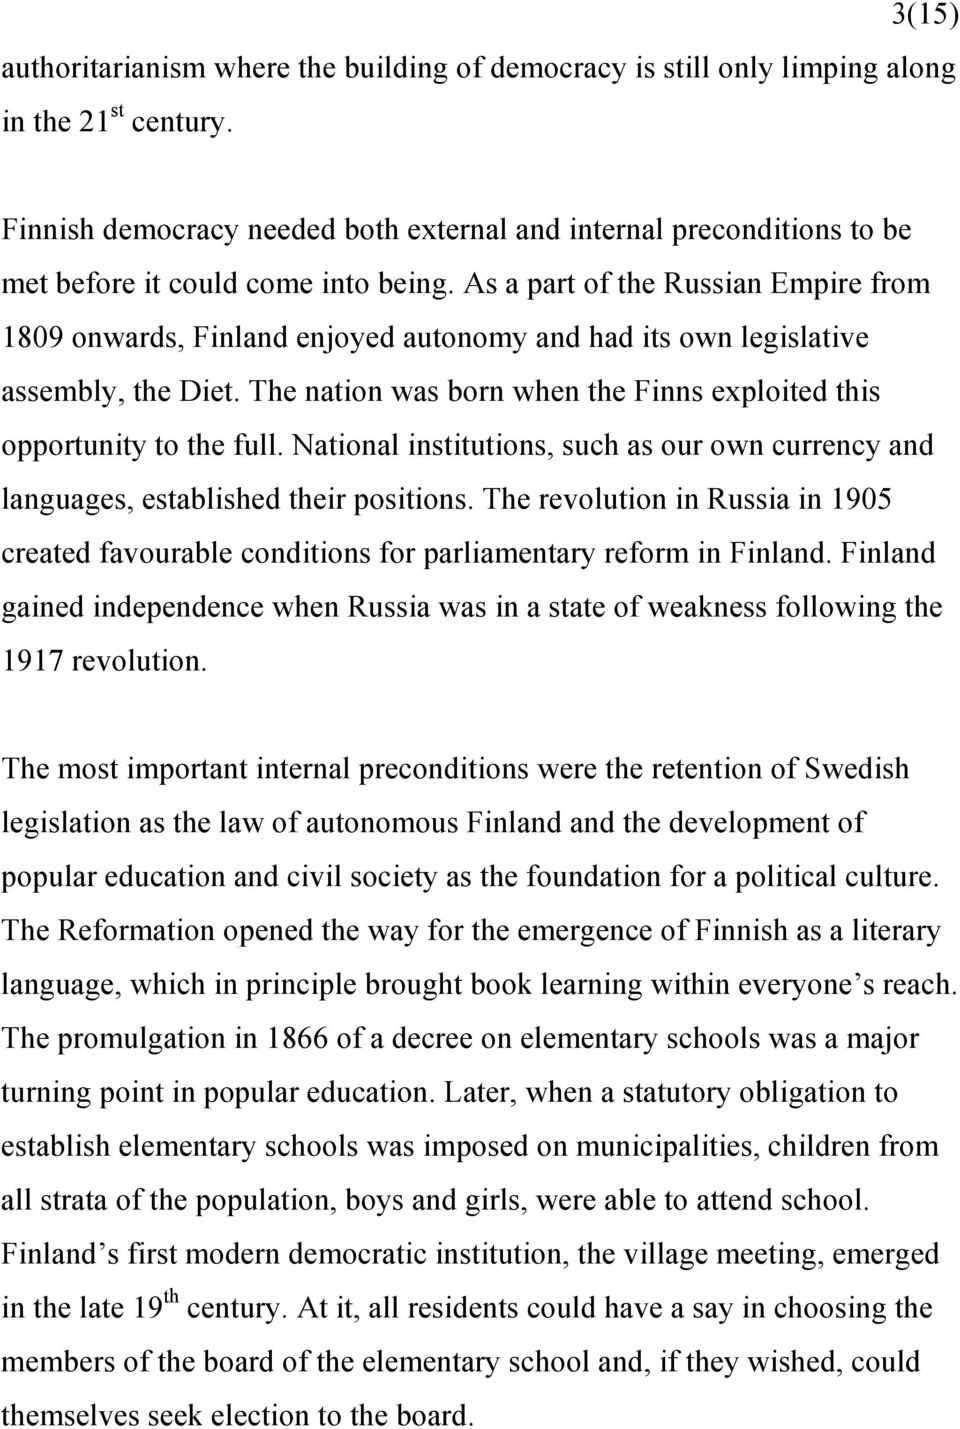 As a part of the Russian Empire from 1809 onwards, Finland enjoyed autonomy and had its own legislative assembly, the Diet. The nation was born when the Finns exploited this opportunity to the full.